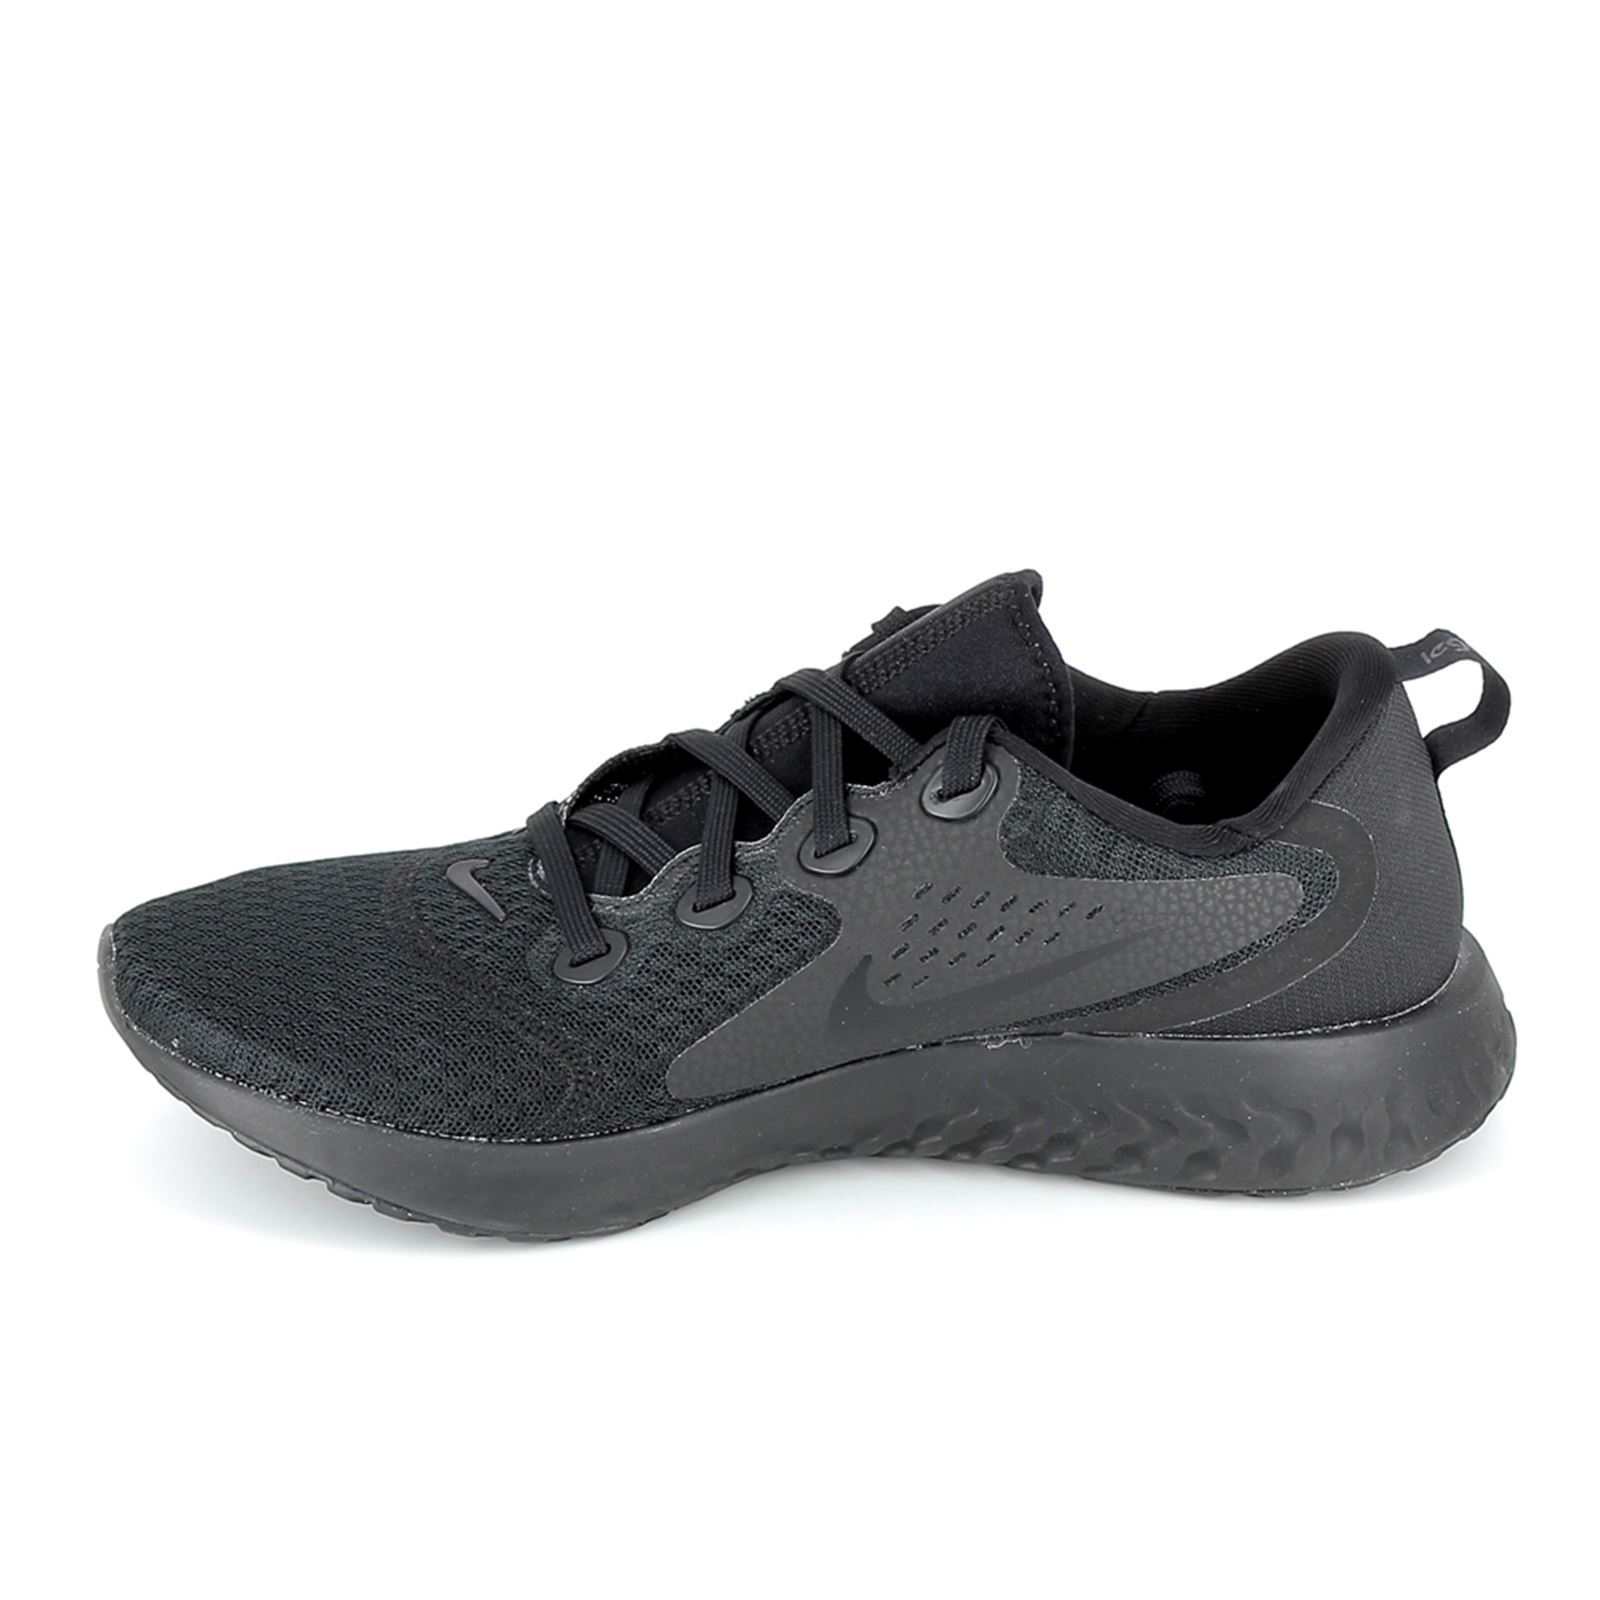 low priced 7c8b3 d9bec NIKE Legend react - Baskets basses - noir